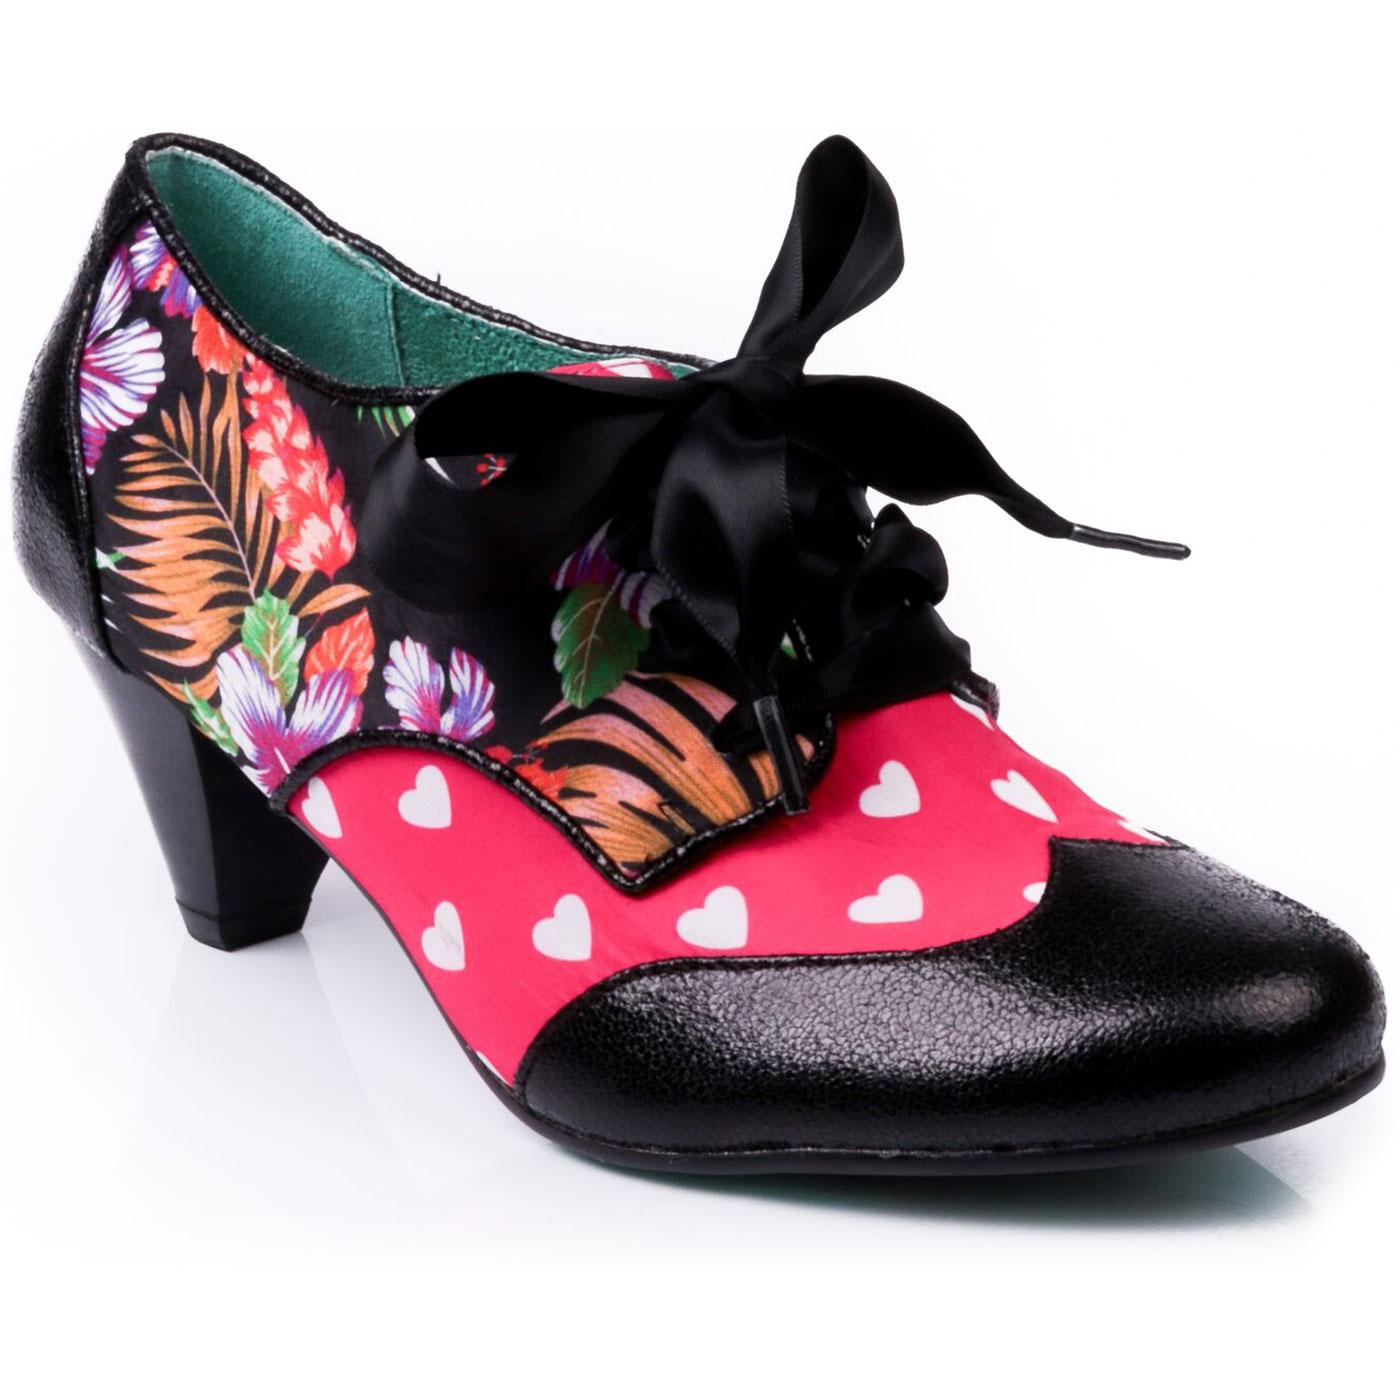 End Of Story POETIC LICENCE Floral & Heart Shoes B